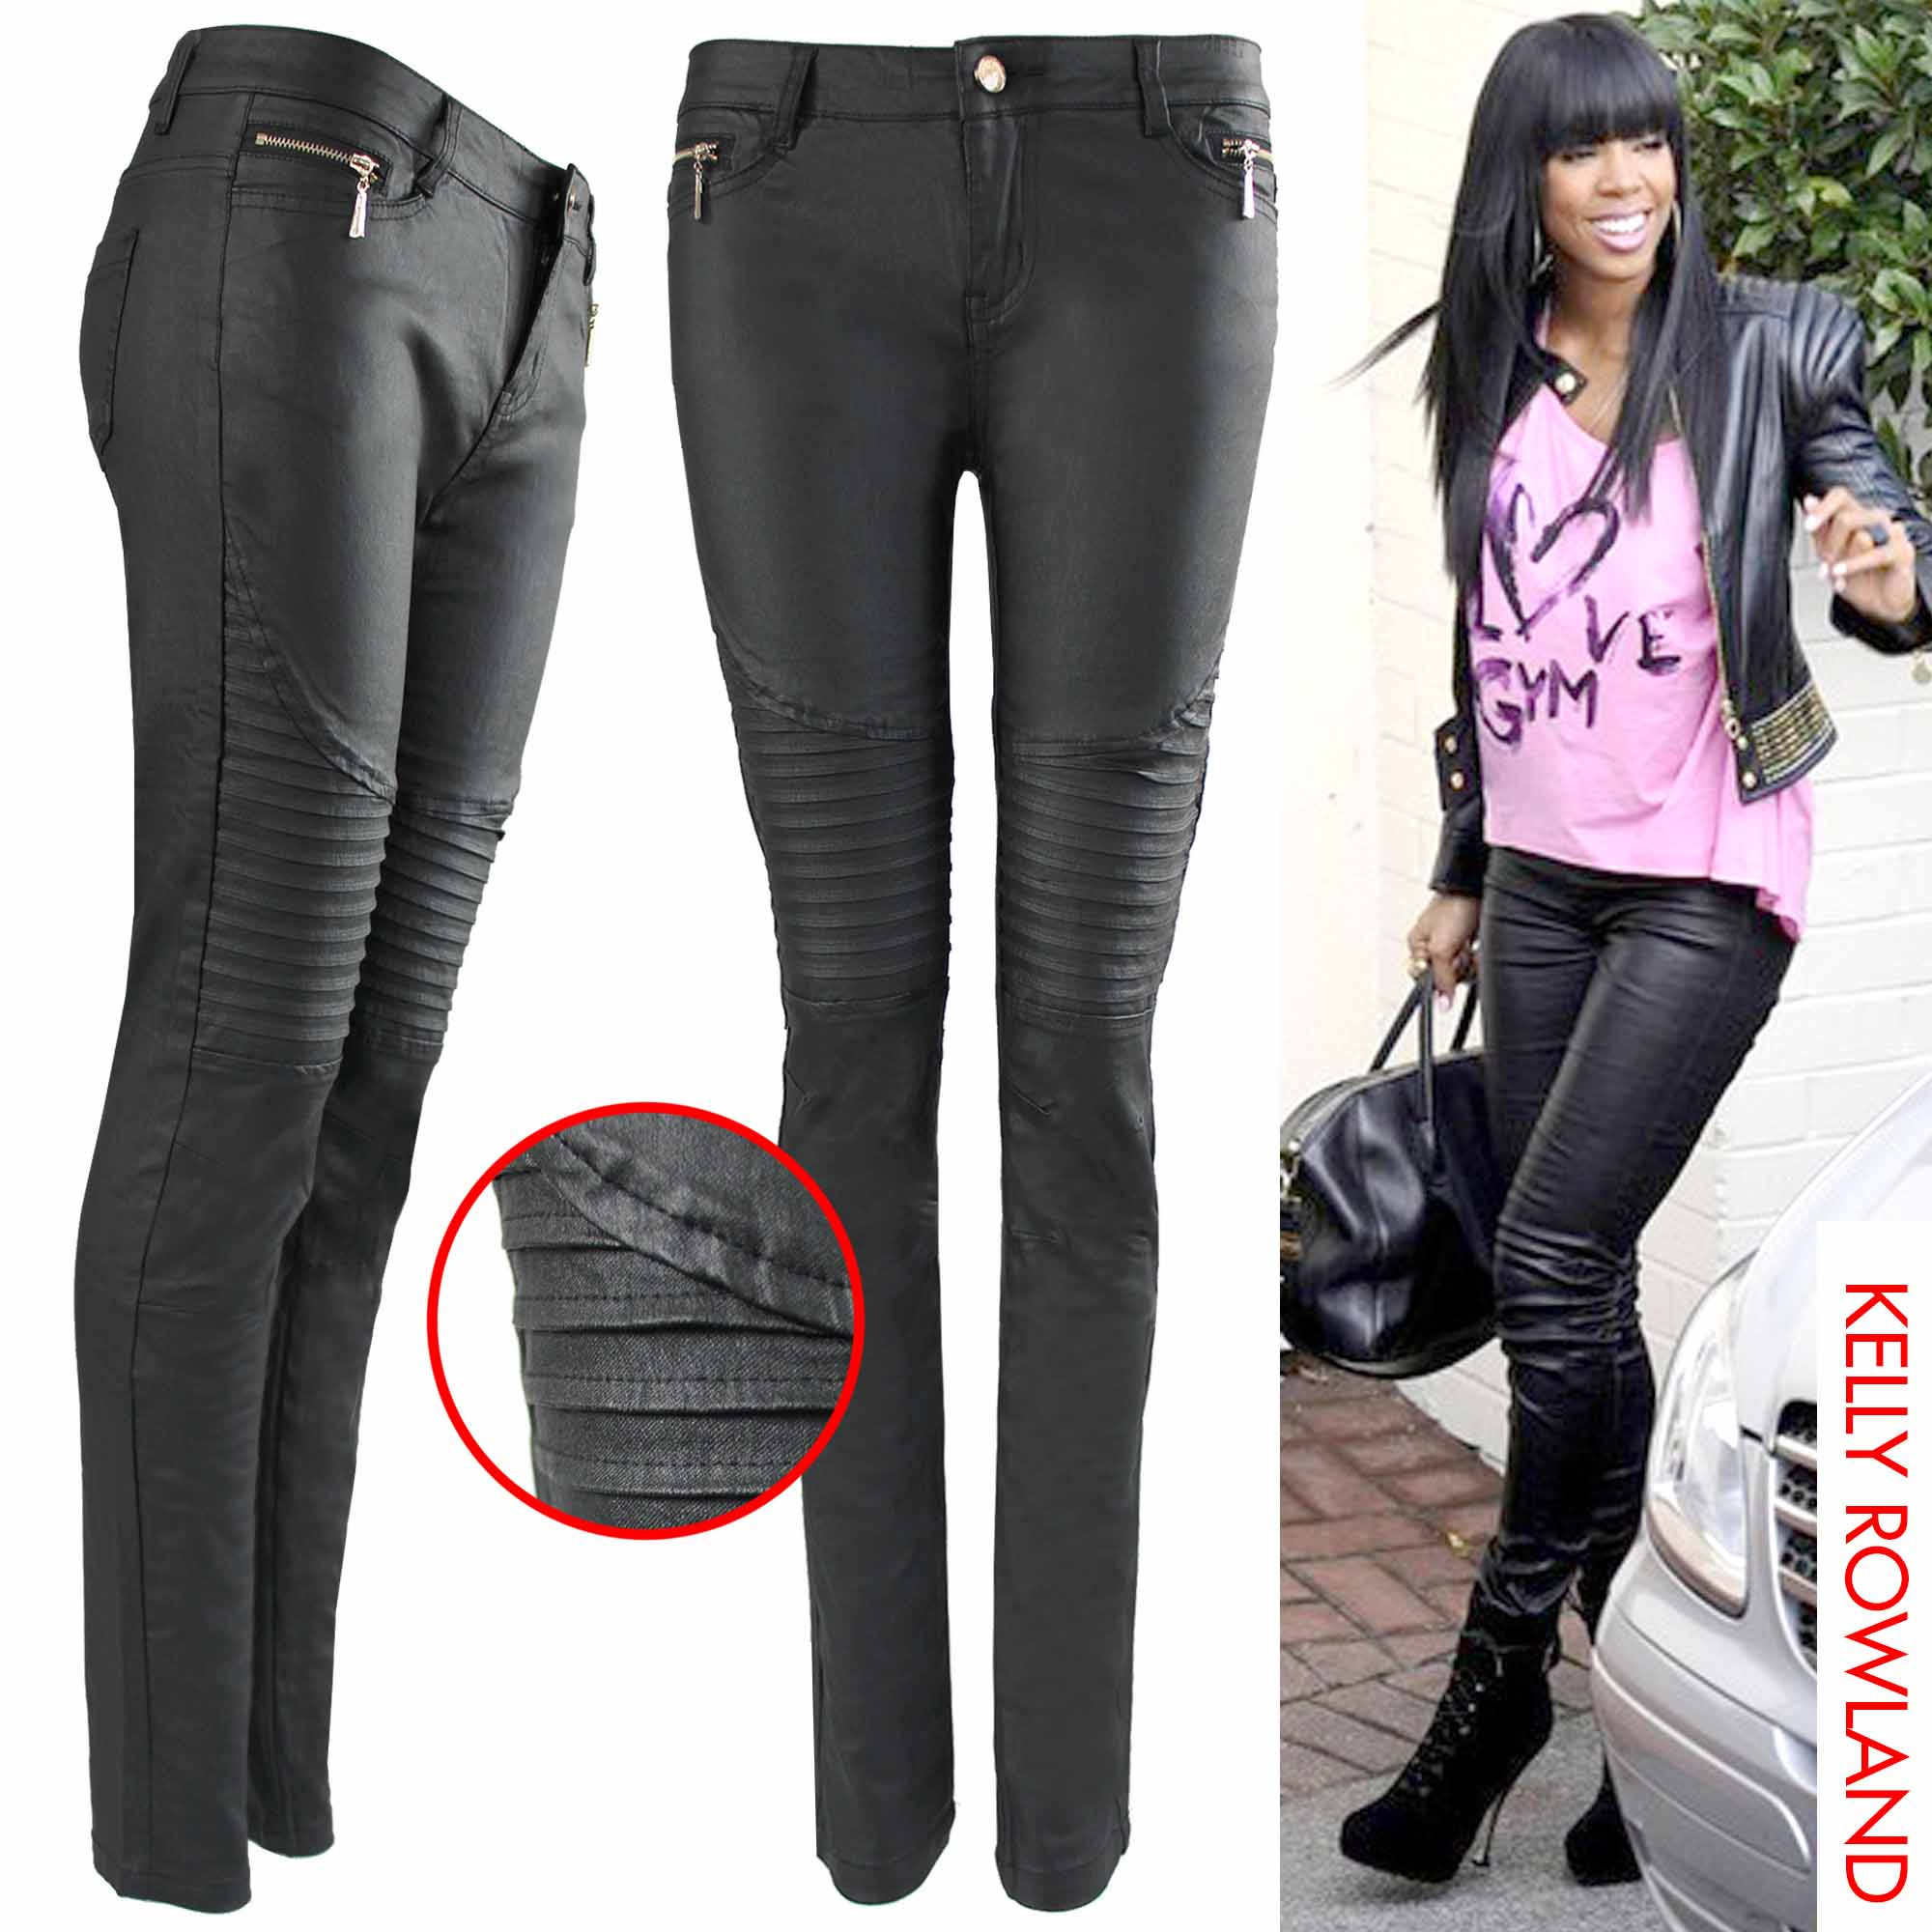 NEW WOMENs LADIES PU BIKER RIB ZIP JEANS LEATHER LOOK SKINNY ...